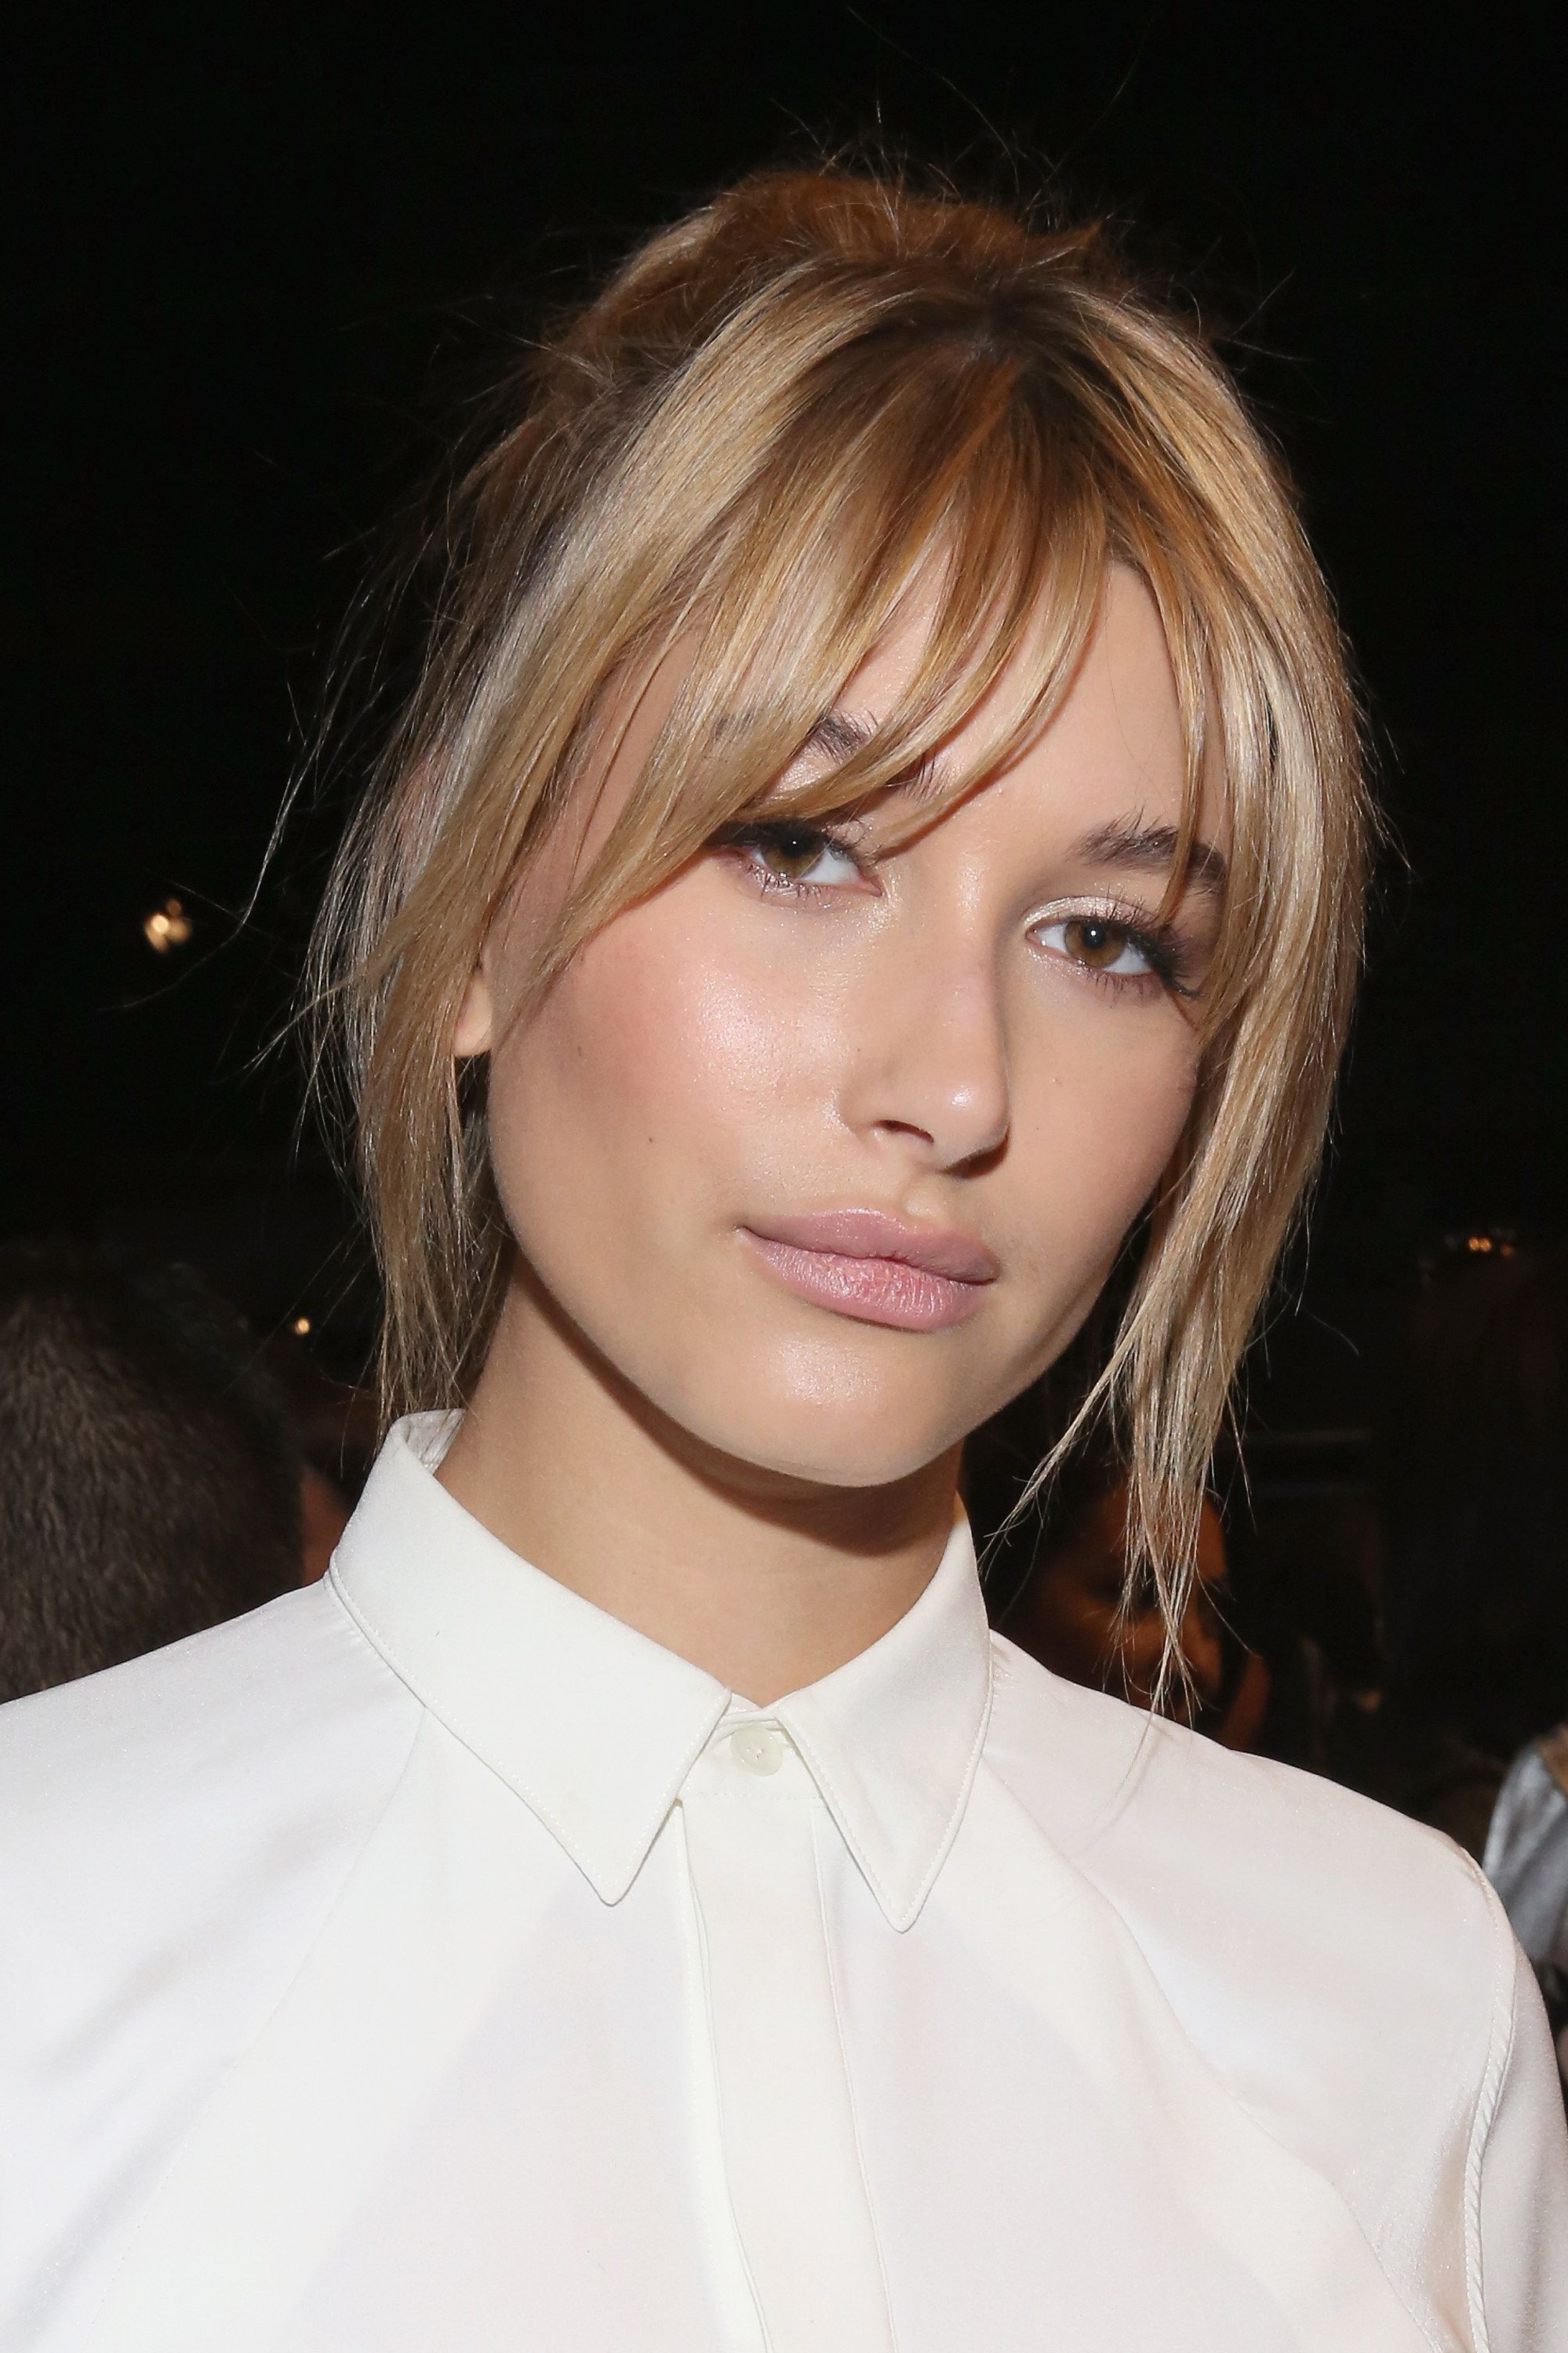 Most Current Middle Parted Relaxed Bob Hairstyles With Side Sweeps With Regard To Pin On Hair Styles! (View 4 of 20)